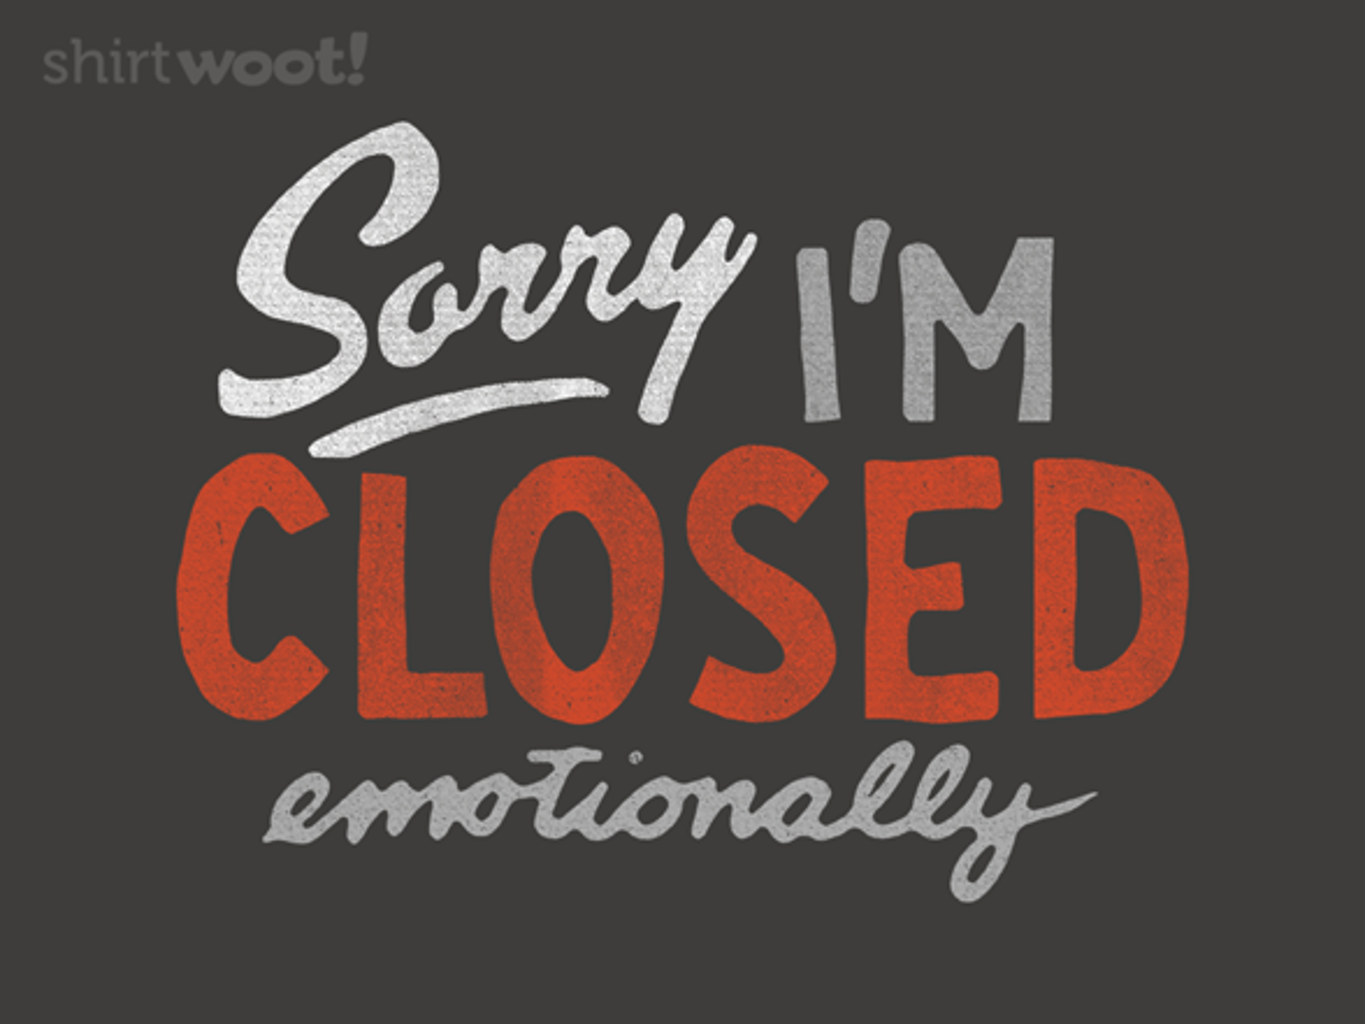 Woot!: Sorry, I'm Closed